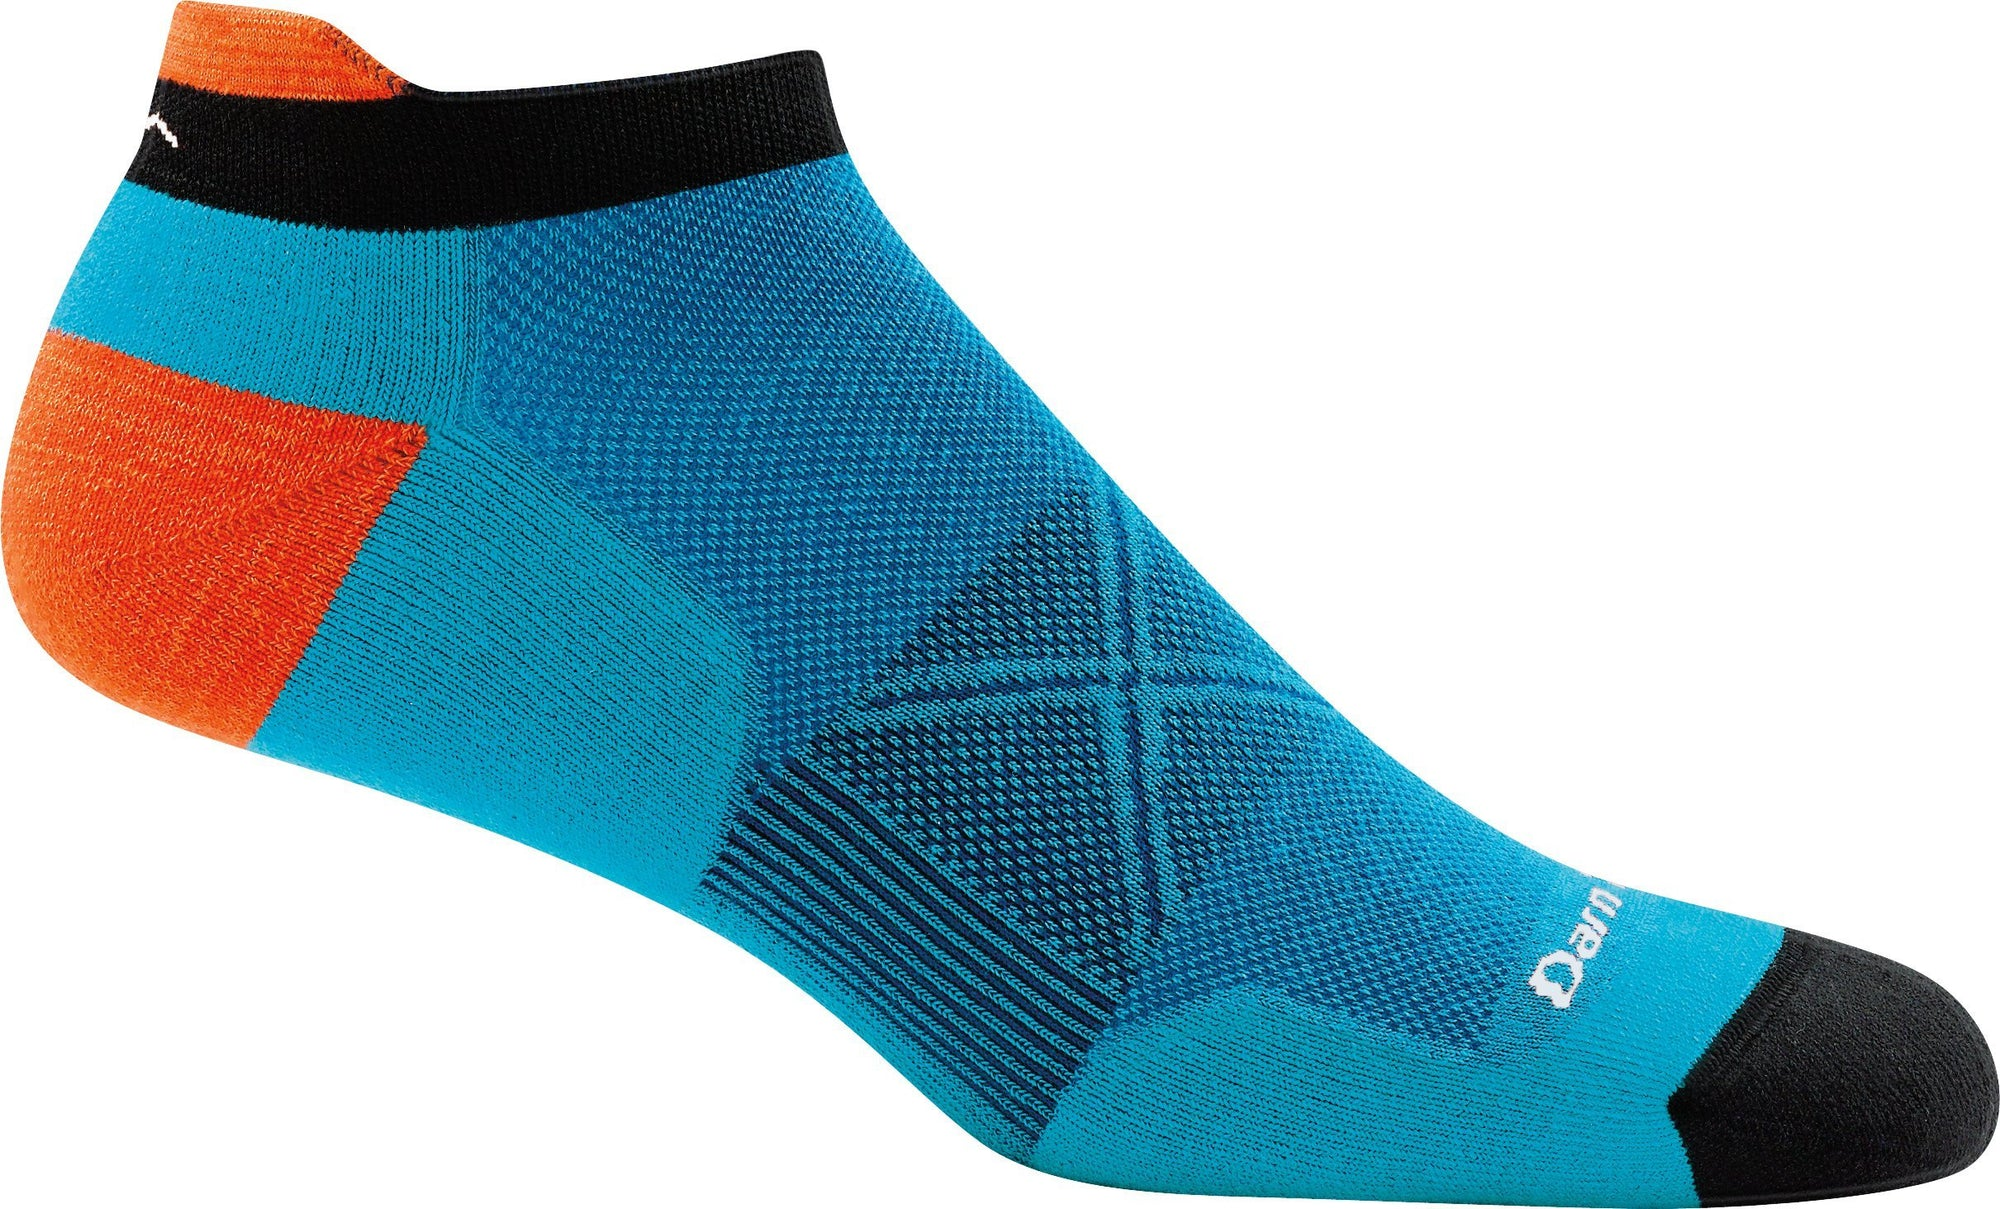 Darn Tough - Vertex No Show Tab Ultra-lightweight With Cushion | Men's - Knock Your Socks Off